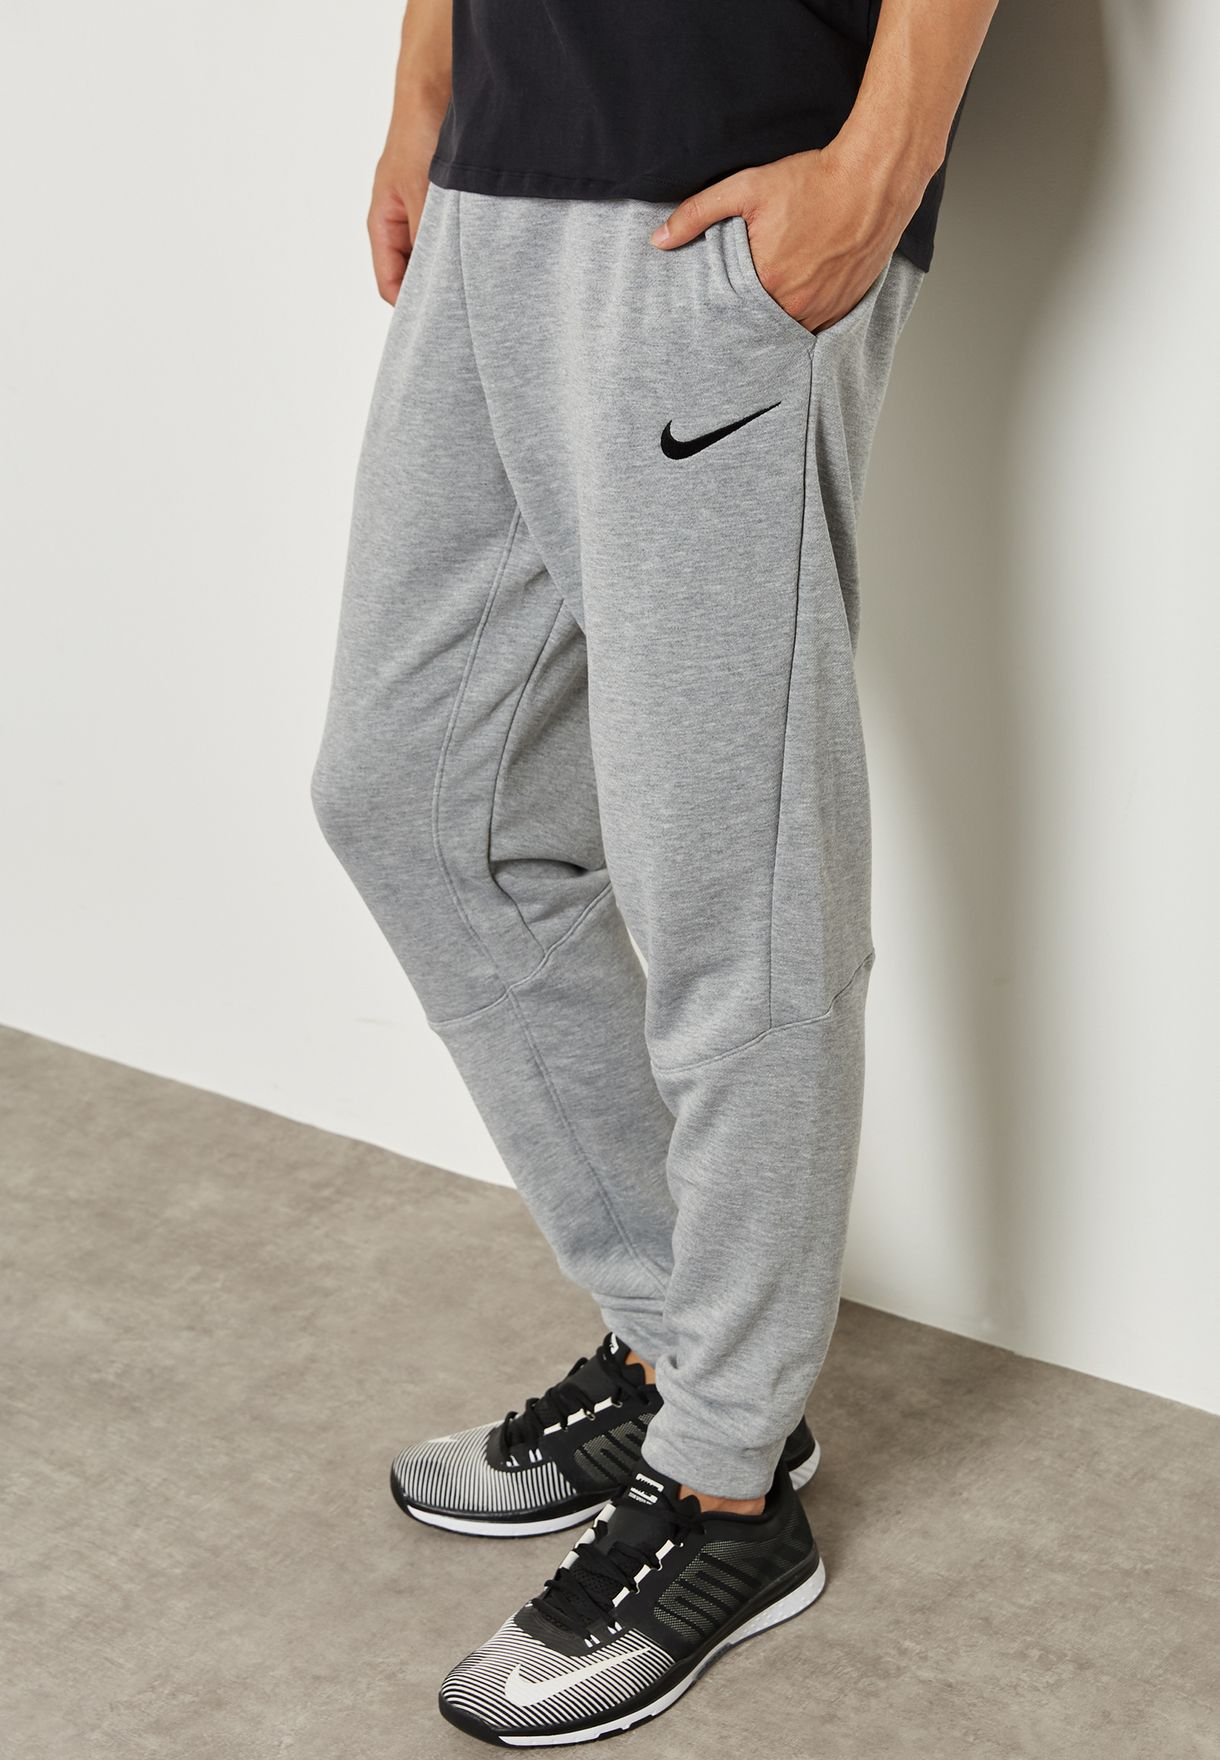 wholesale outlet cheap price utterly stylish Dri-FIT Taper Fleece Sweatpants